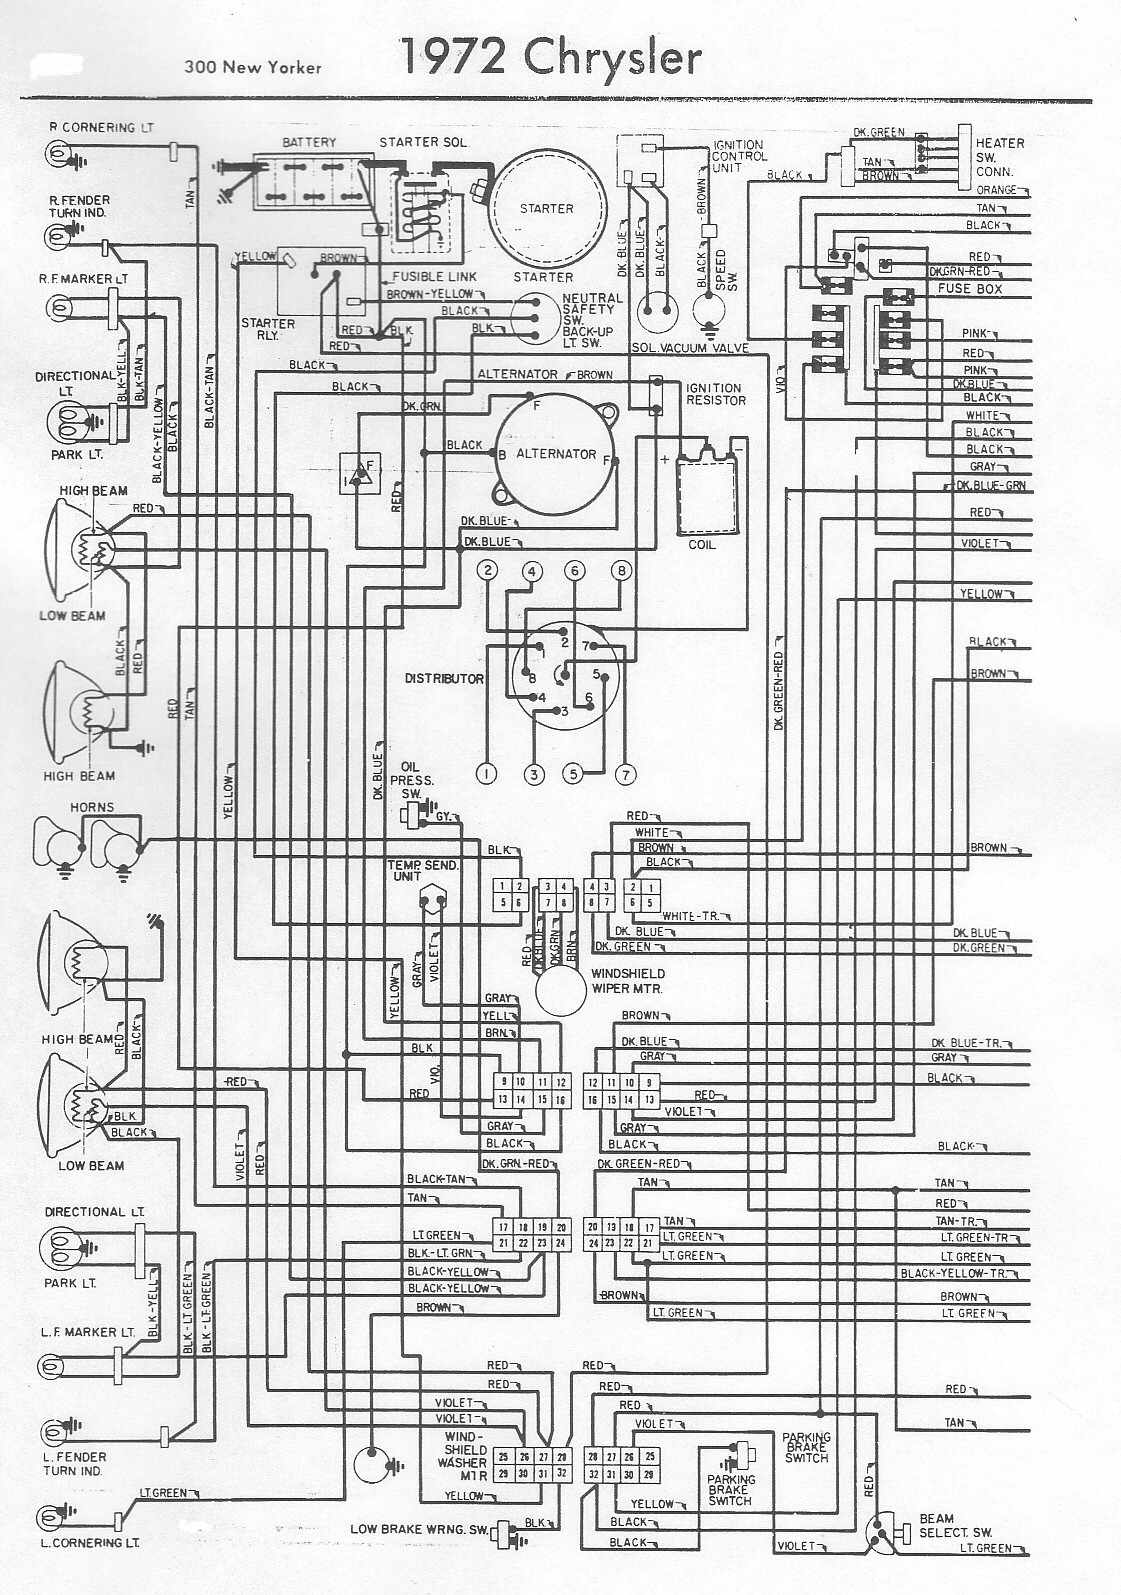 1950 chrysler windsor ignition wiring diagram. Black Bedroom Furniture Sets. Home Design Ideas